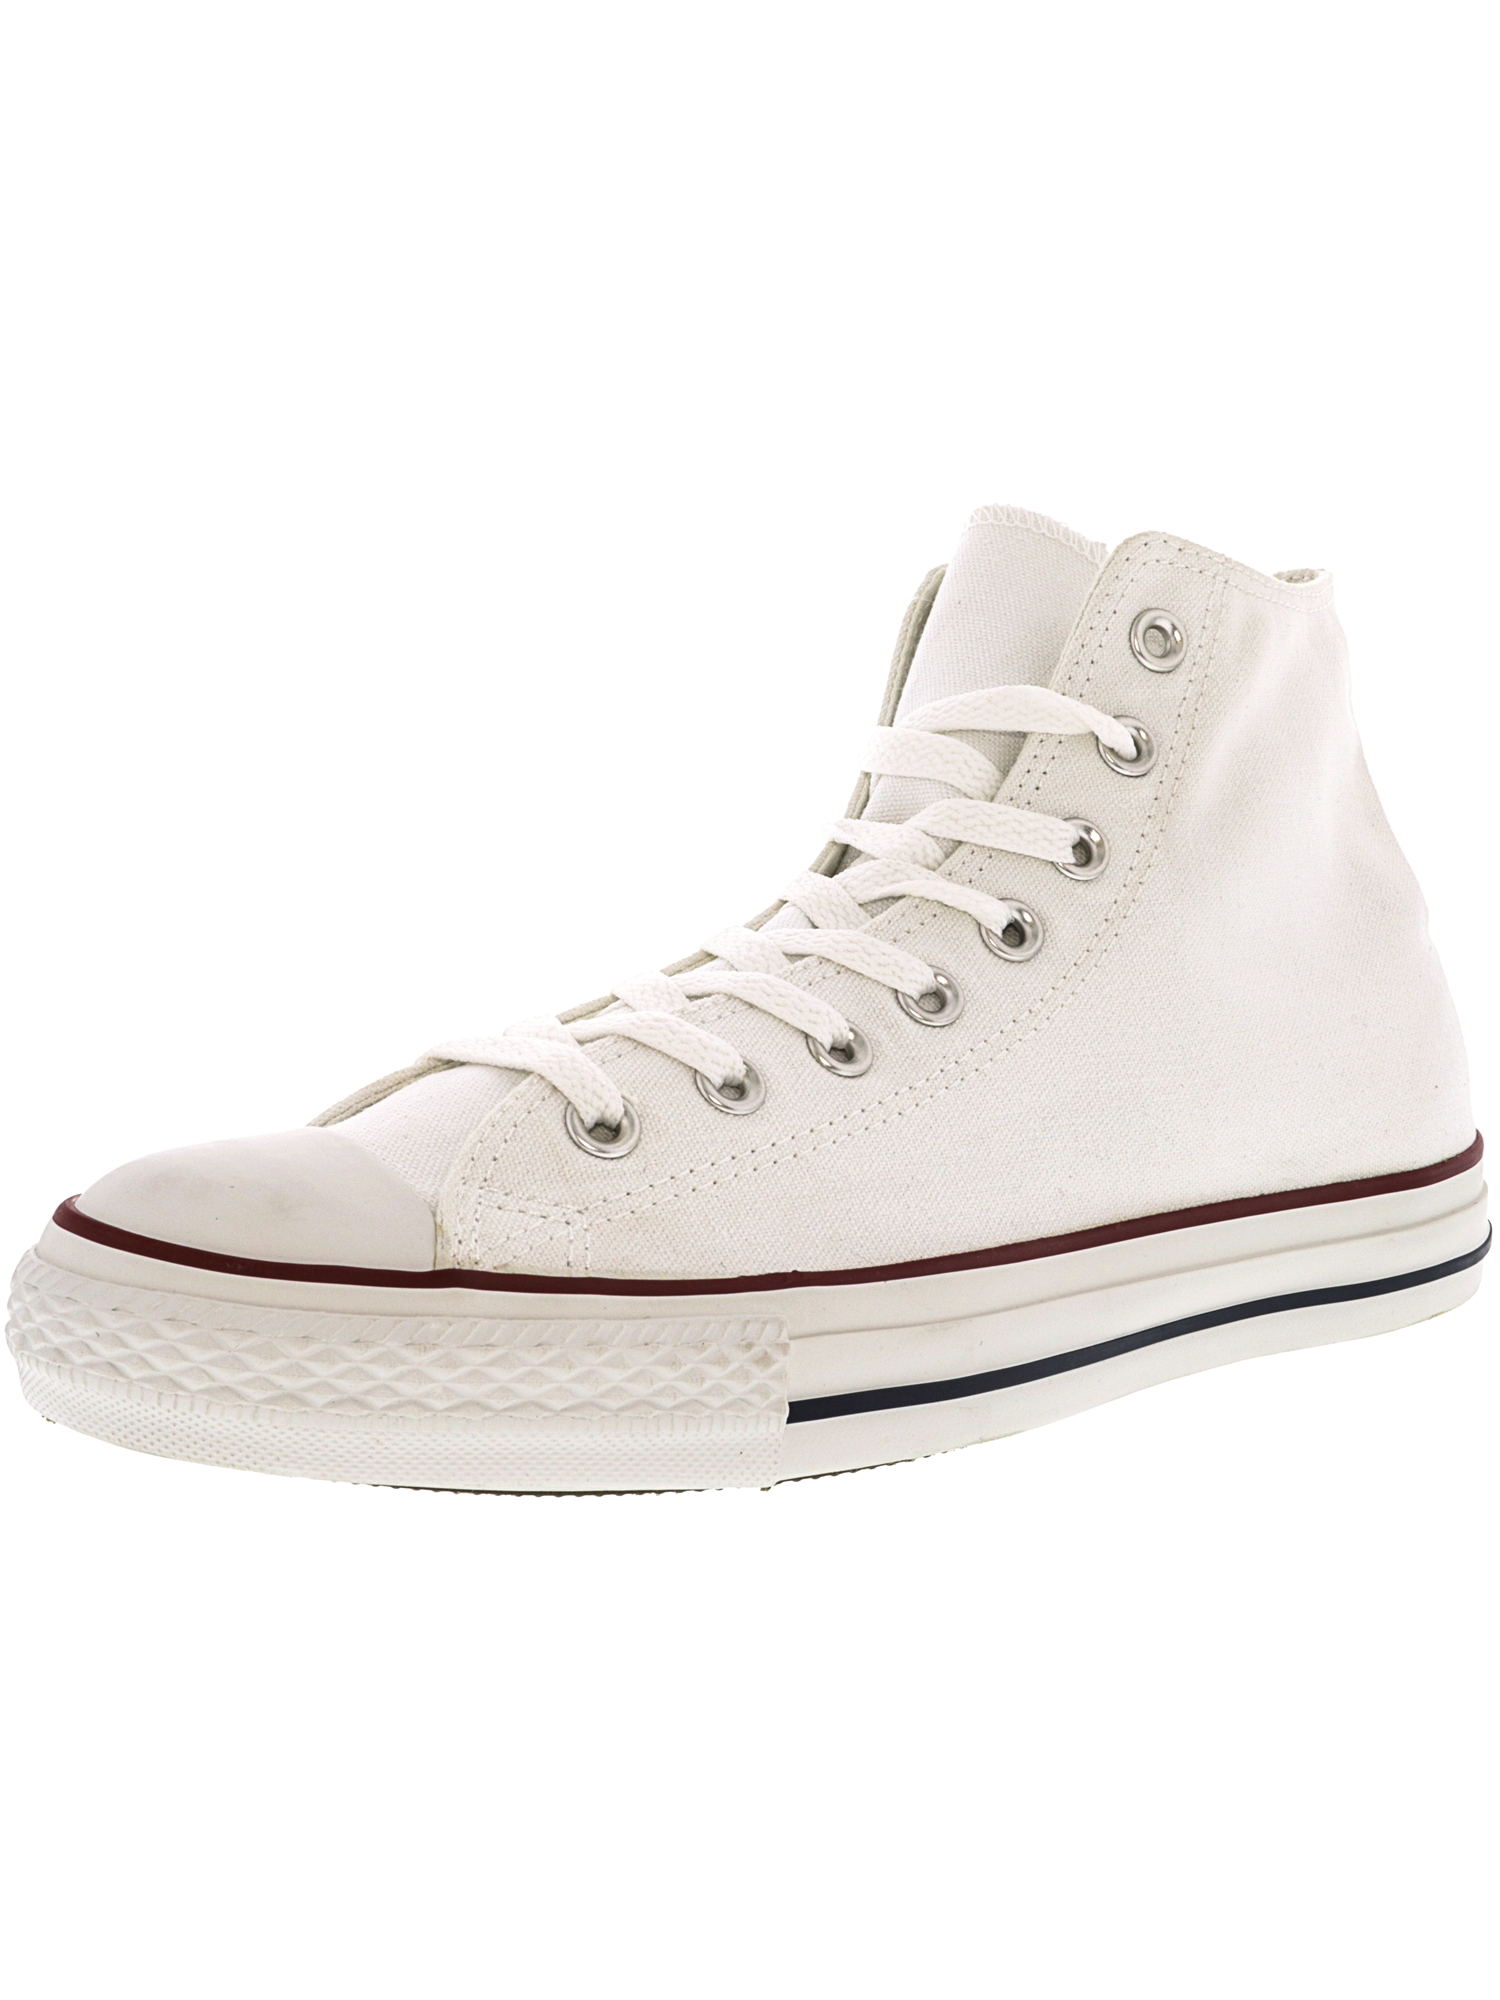 Converse All Star Hi Storm Wind Ankle-High Fashion Sneaker 8M   6M by Converse